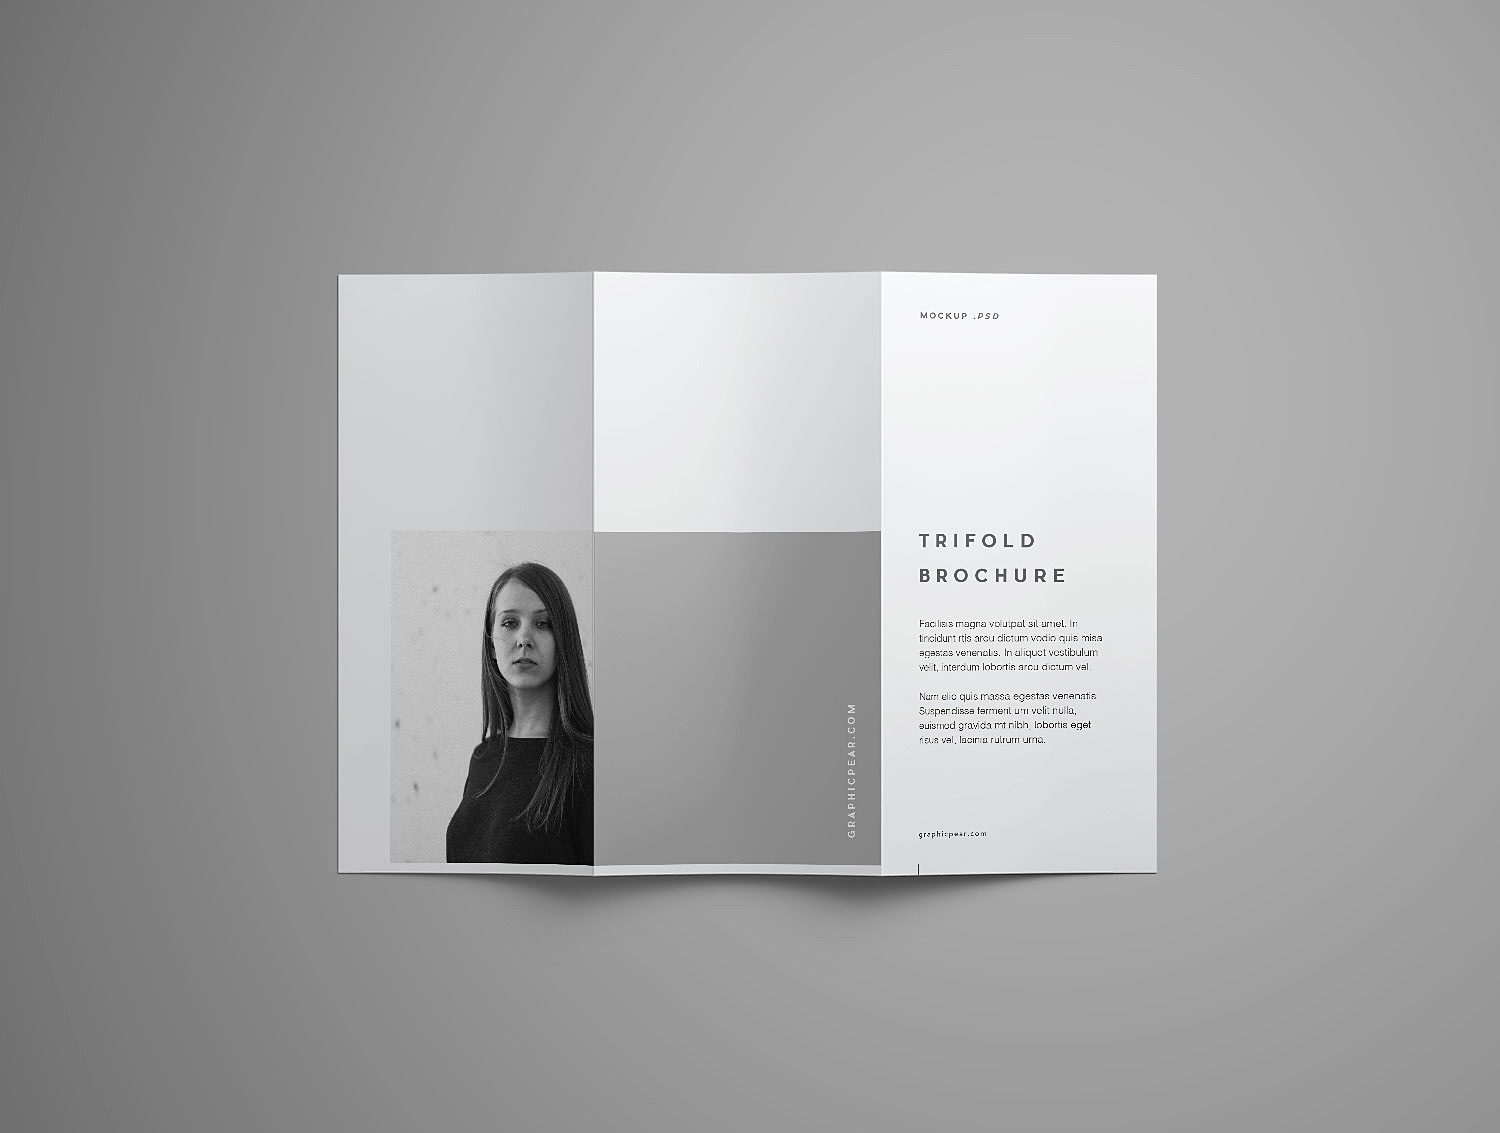 Trifold Brochure Mockup Free